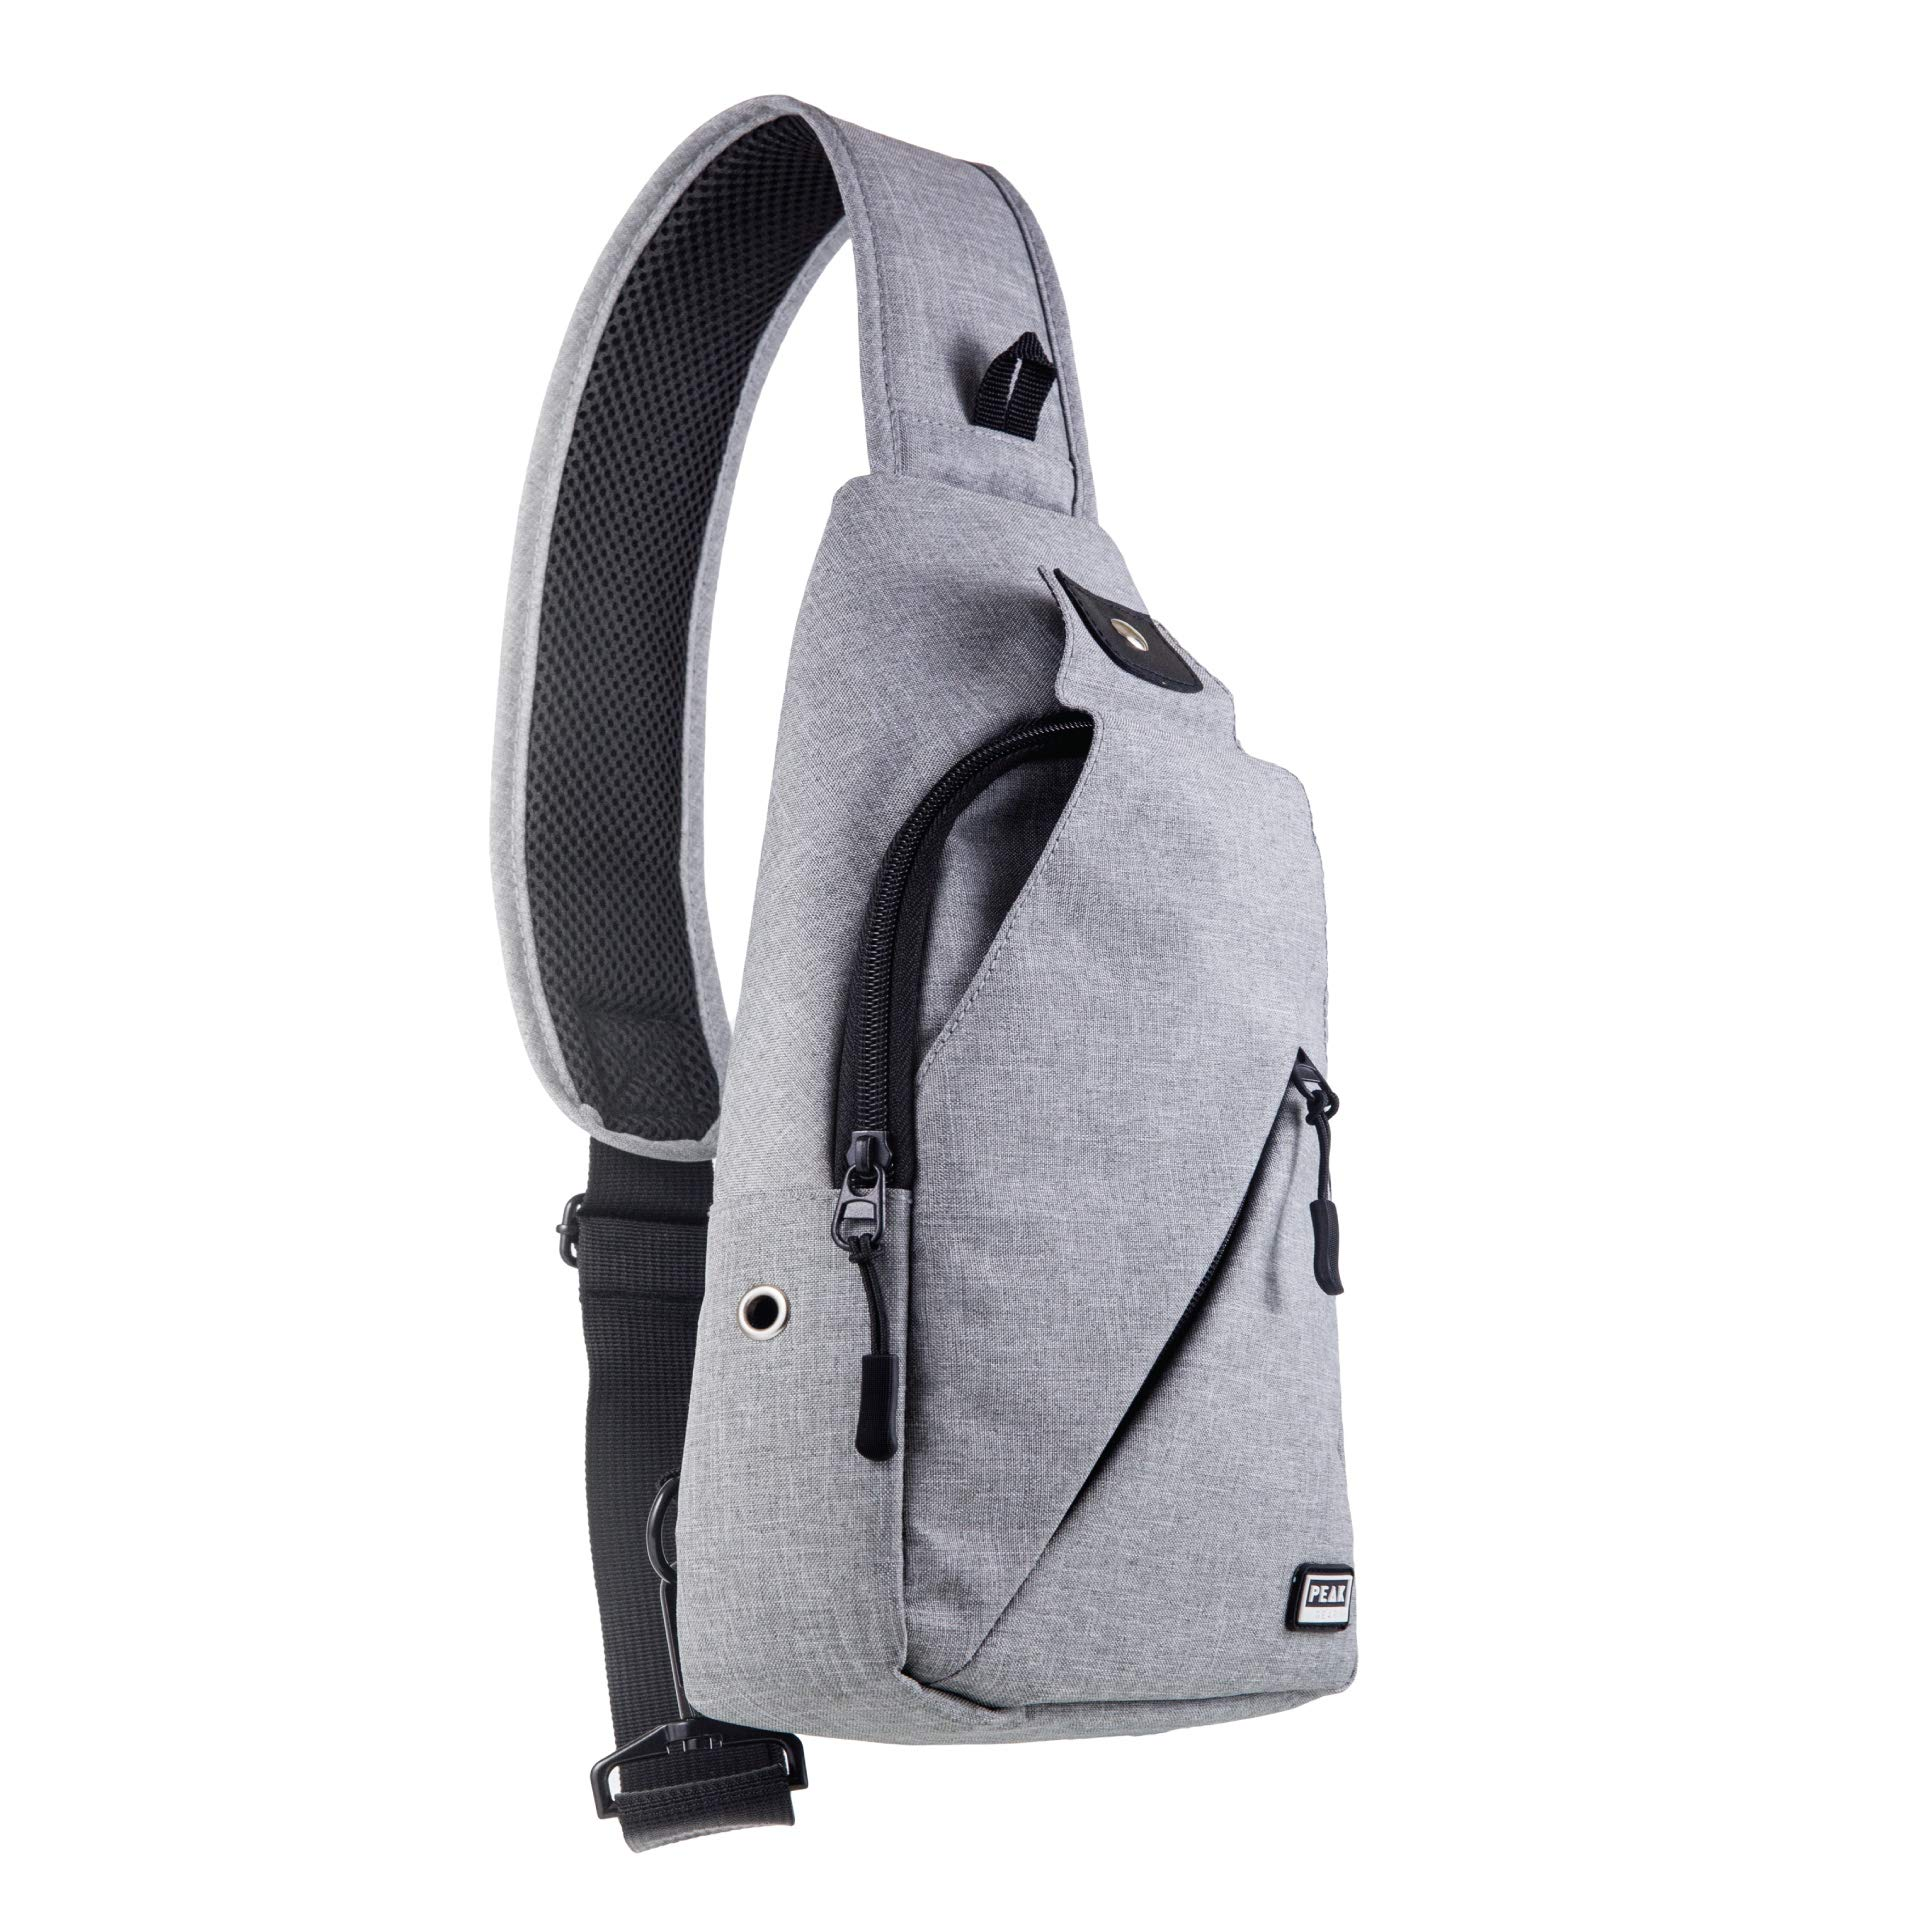 w// Lost /& Found ID Peak Gear Sling Compact Crossbody Backpack and Day Bag